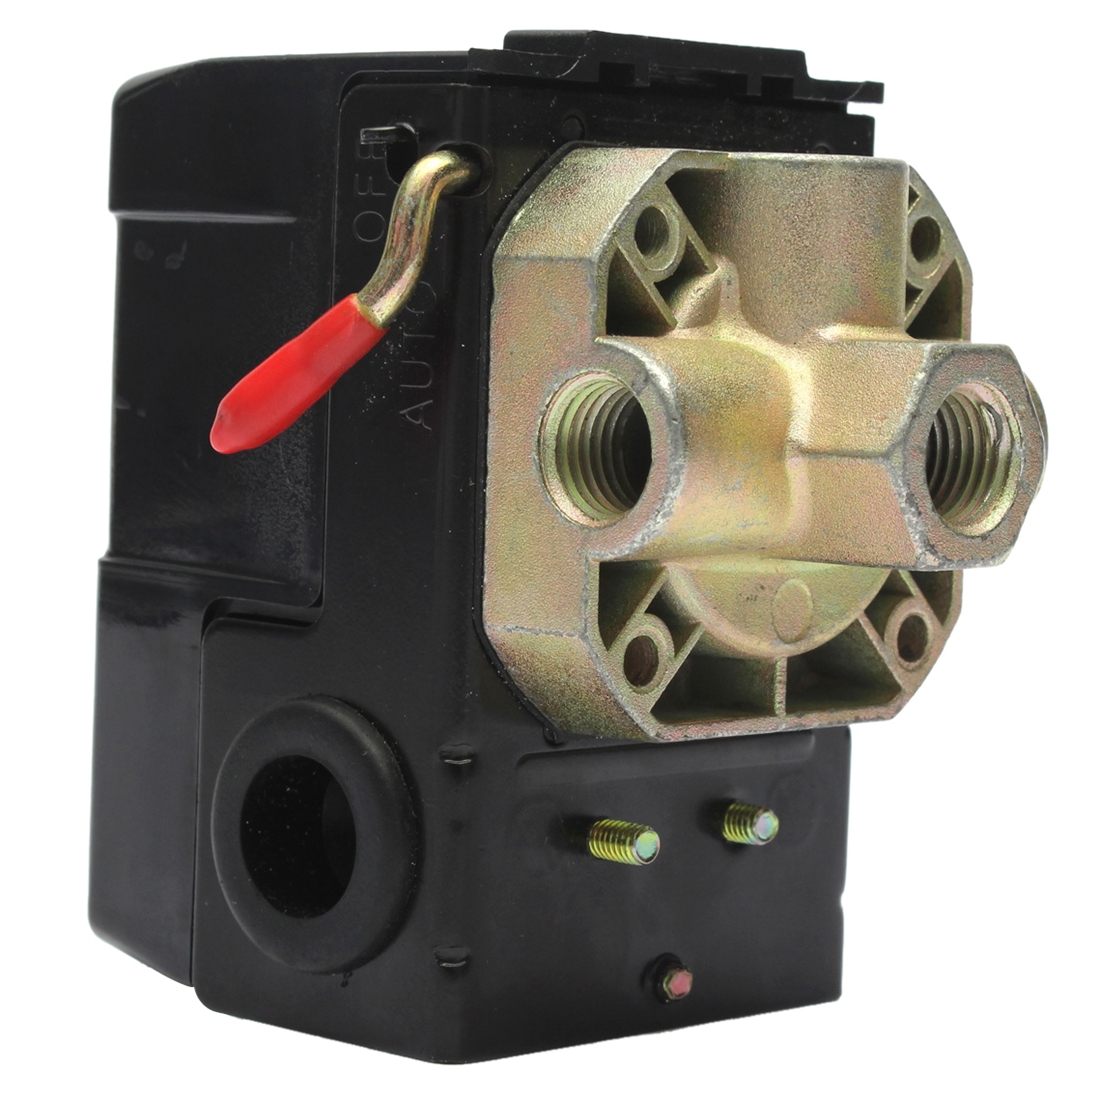 SHGO HOT-Pressure Switch Control Air Compressor 140-175 PSI 4 Port Heavy Duty 26 AMP Black heavy duty air compressor pressure control switch valve 90 120psi 12 bar 20a ac220v 4 port 12 5 x 8 x 5cm promotion price